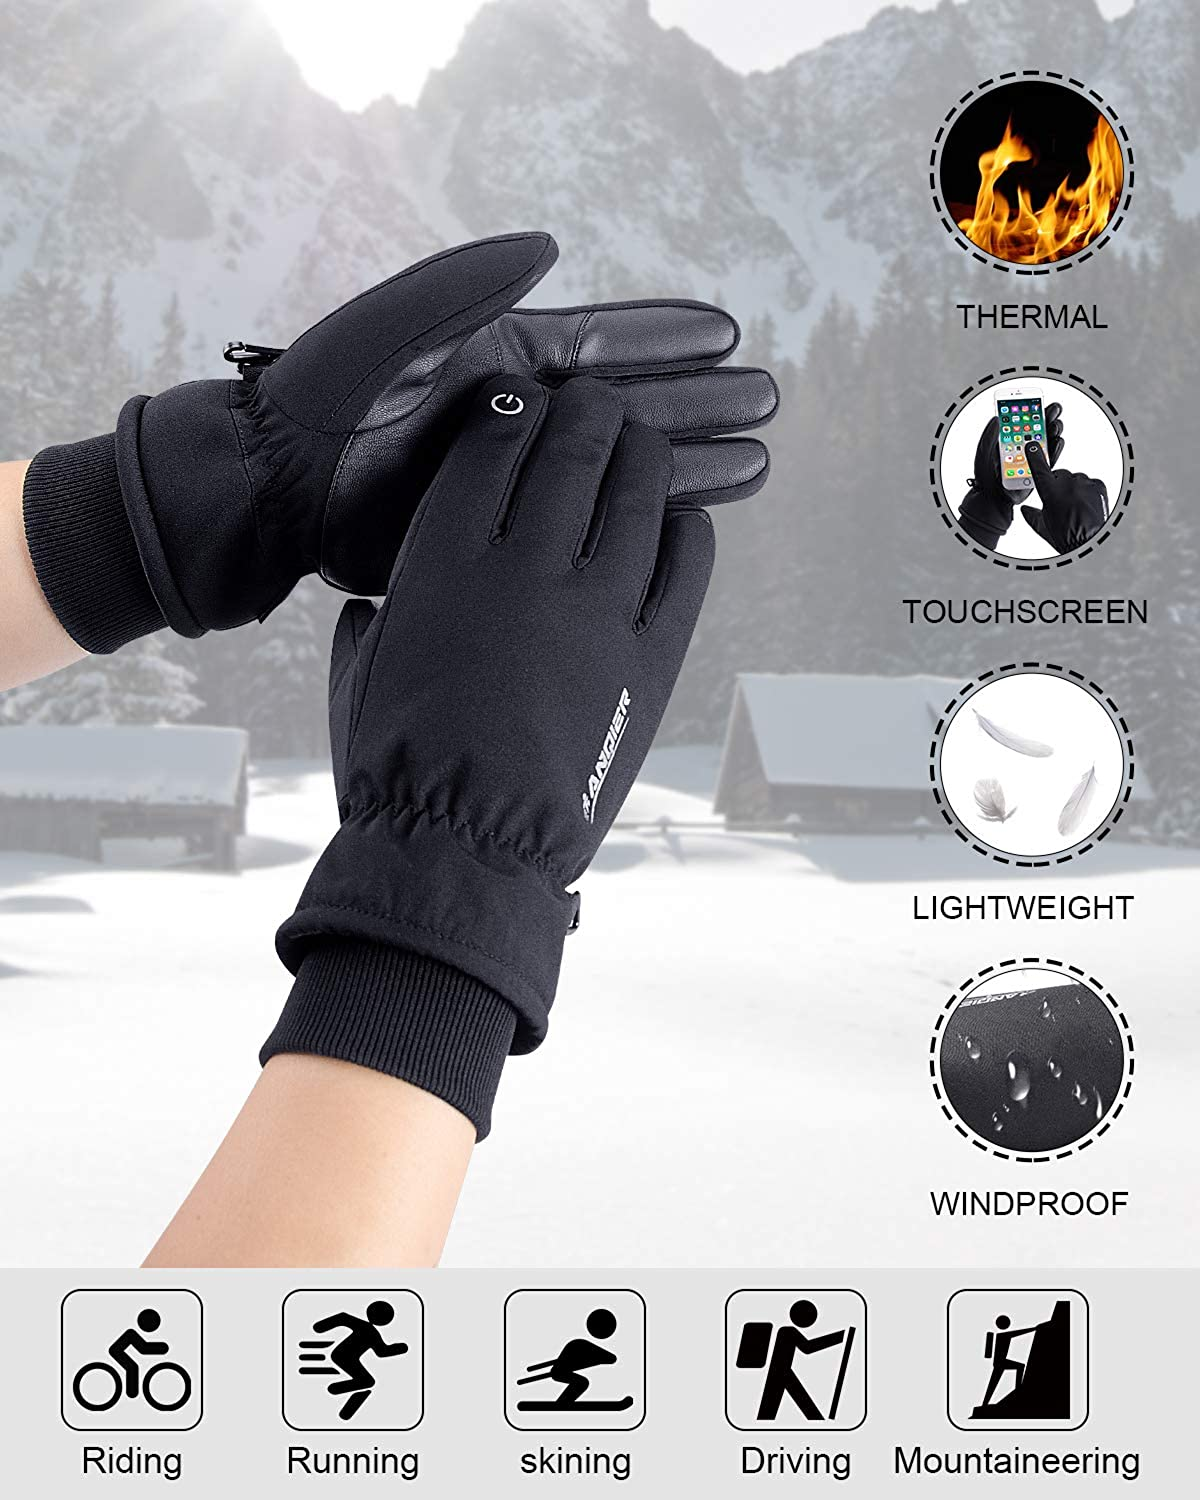 coskefy Winter Thermal Gloves Men Women Windproof Touchscreen Thinsulate...